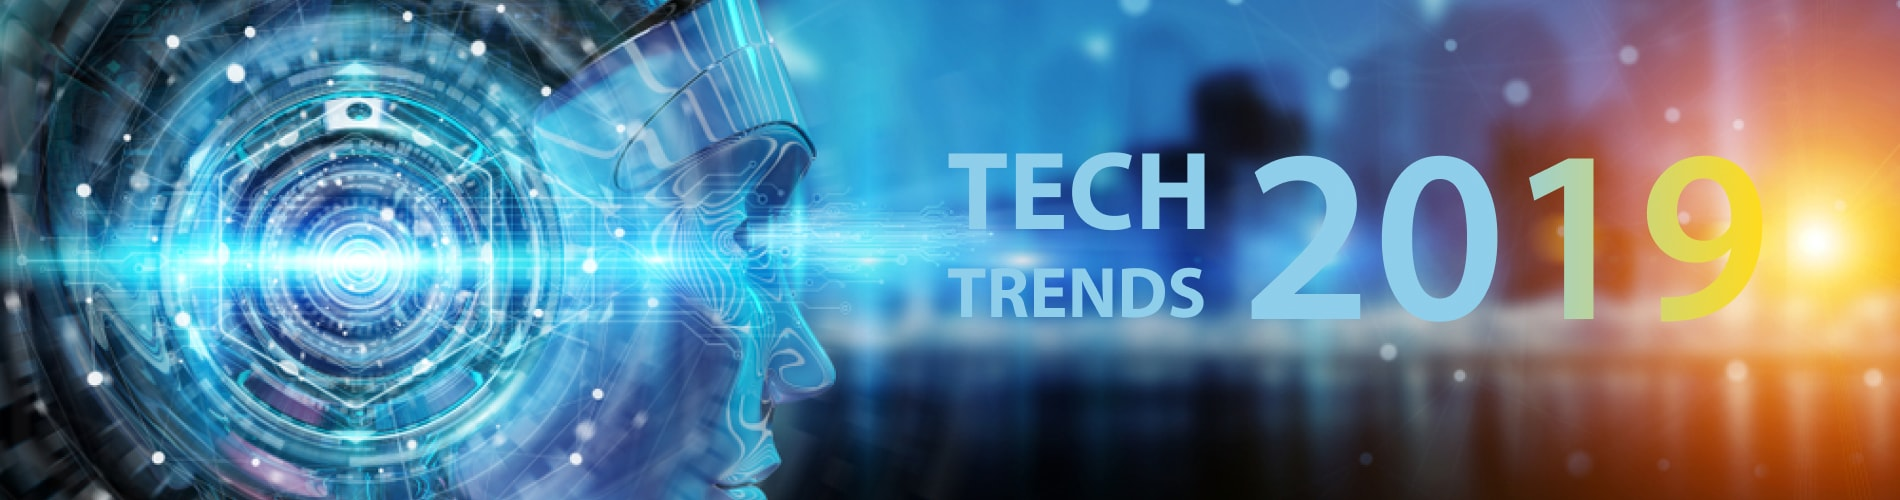 List of Tech Trends